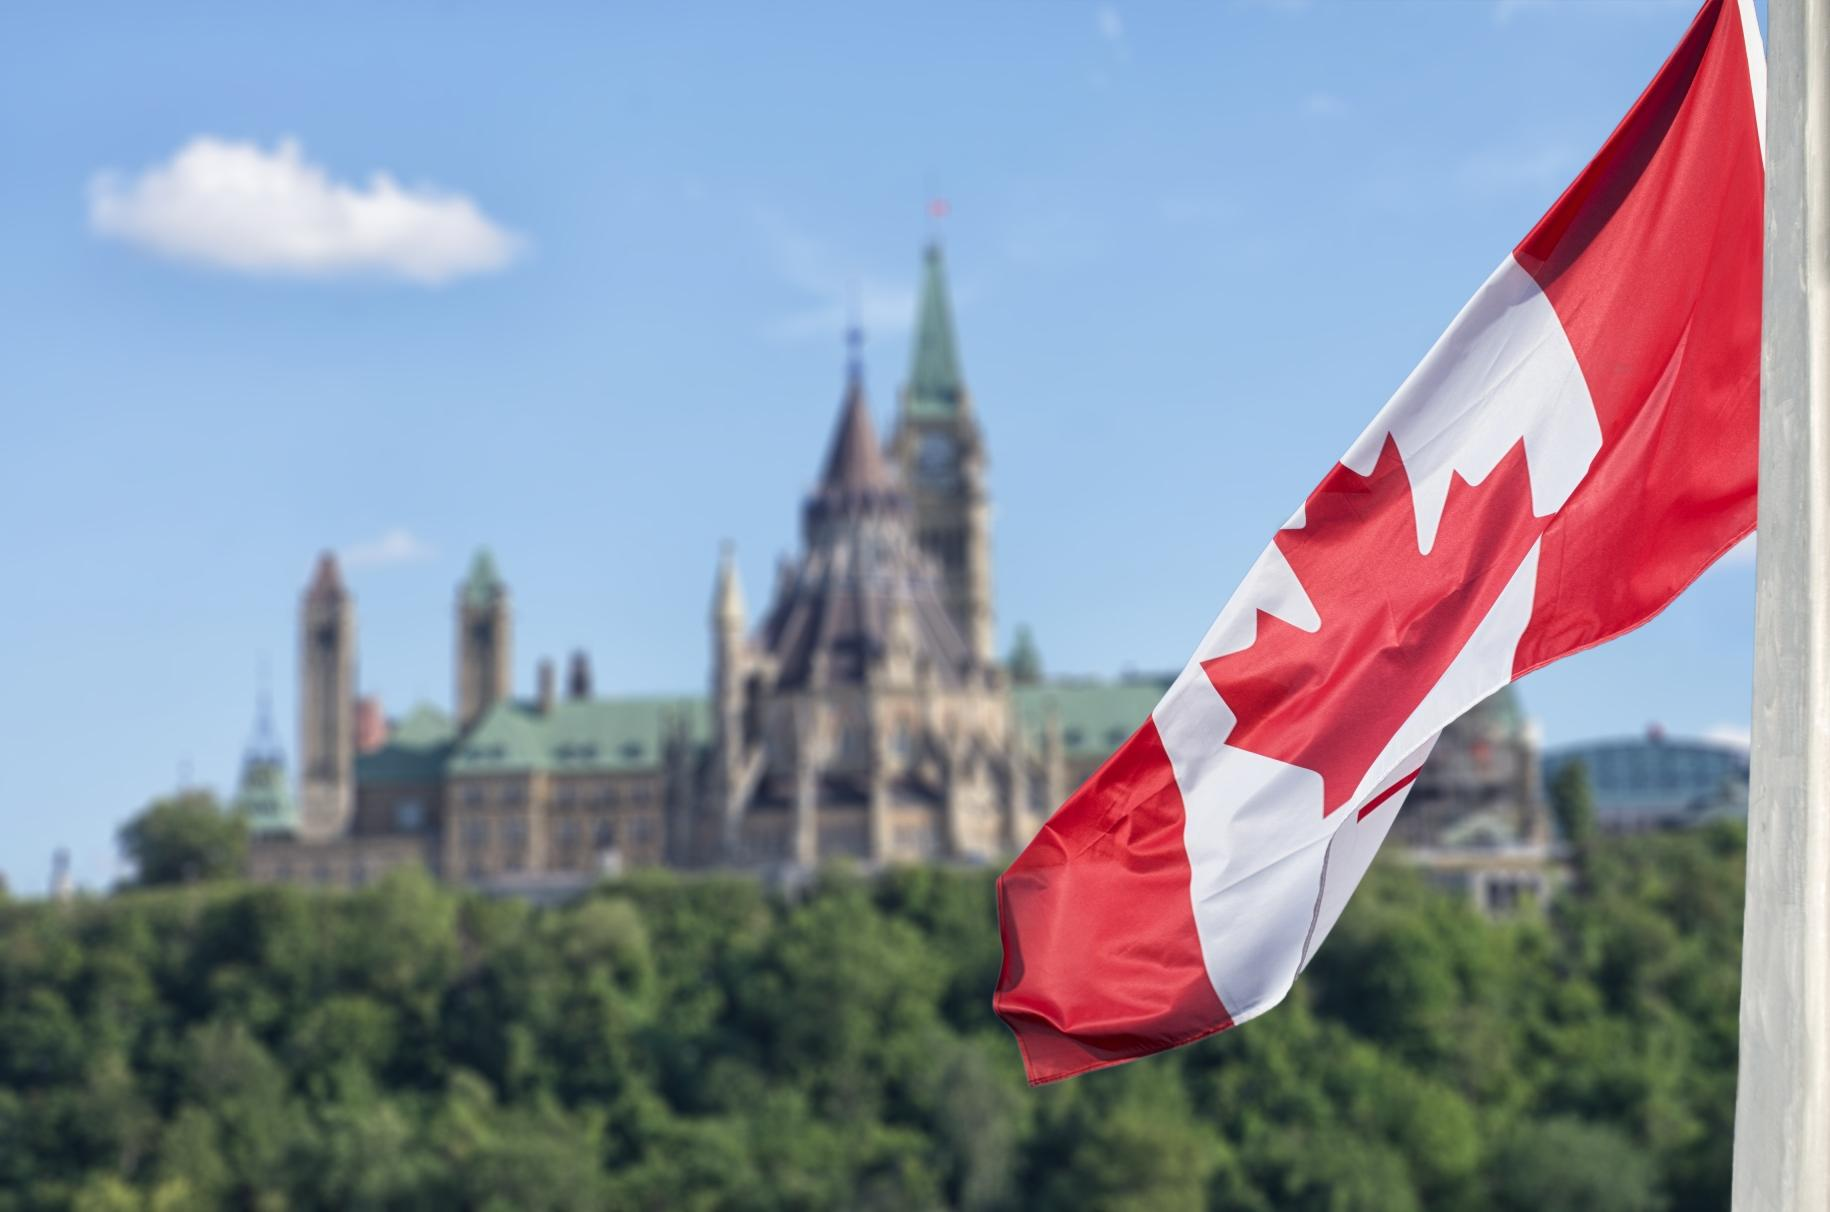 am800-news-canada-flag-parliament-hill-february-2-2019